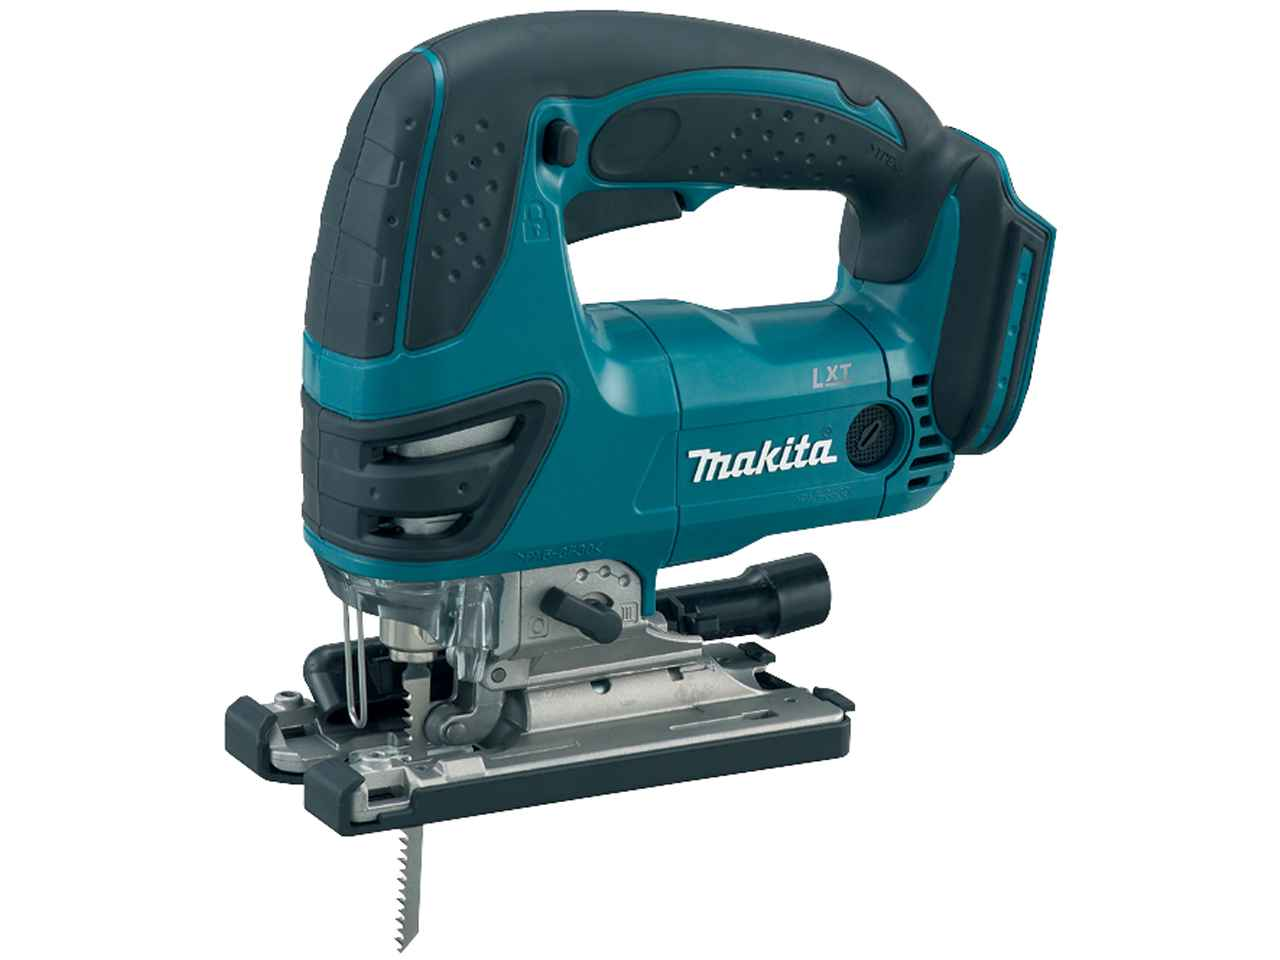 makita dlx6017 18v lxt 6 piece cordless combo kit 3 x 3 0ah. Black Bedroom Furniture Sets. Home Design Ideas